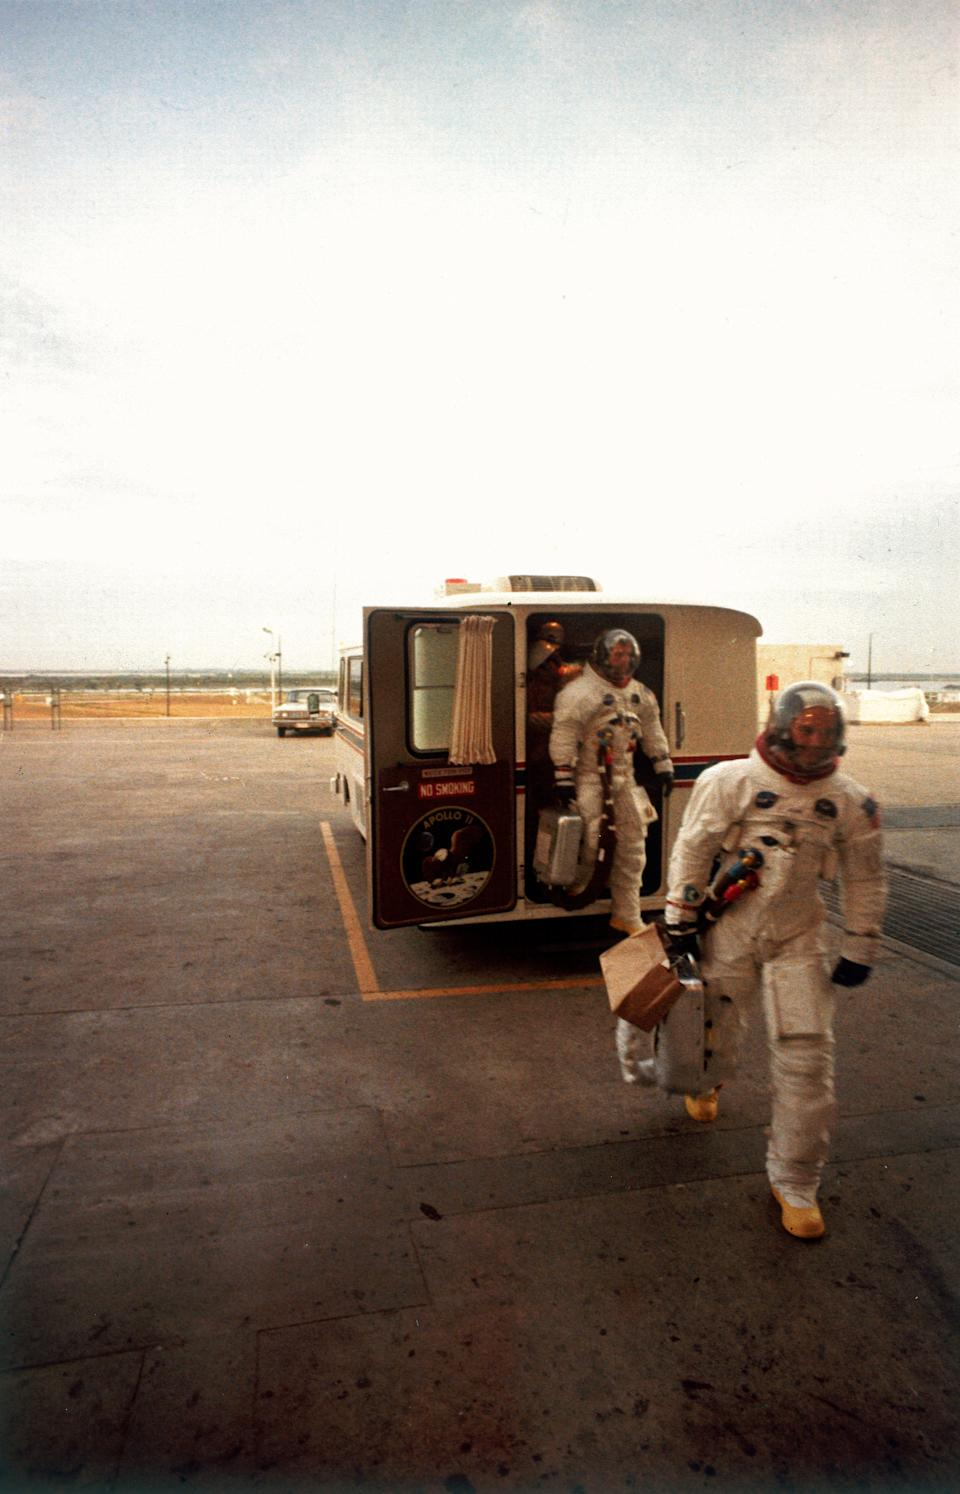 The Apollo 11 astronauts exit the transfer van after they arrive at the mission launch tower, Cape Canaveral (then known as Cape Kennedy), Florida, July 16, 1969. (Photo: Ralph Morse/The LIFE Picture Collection via Getty Images/Getty Images)